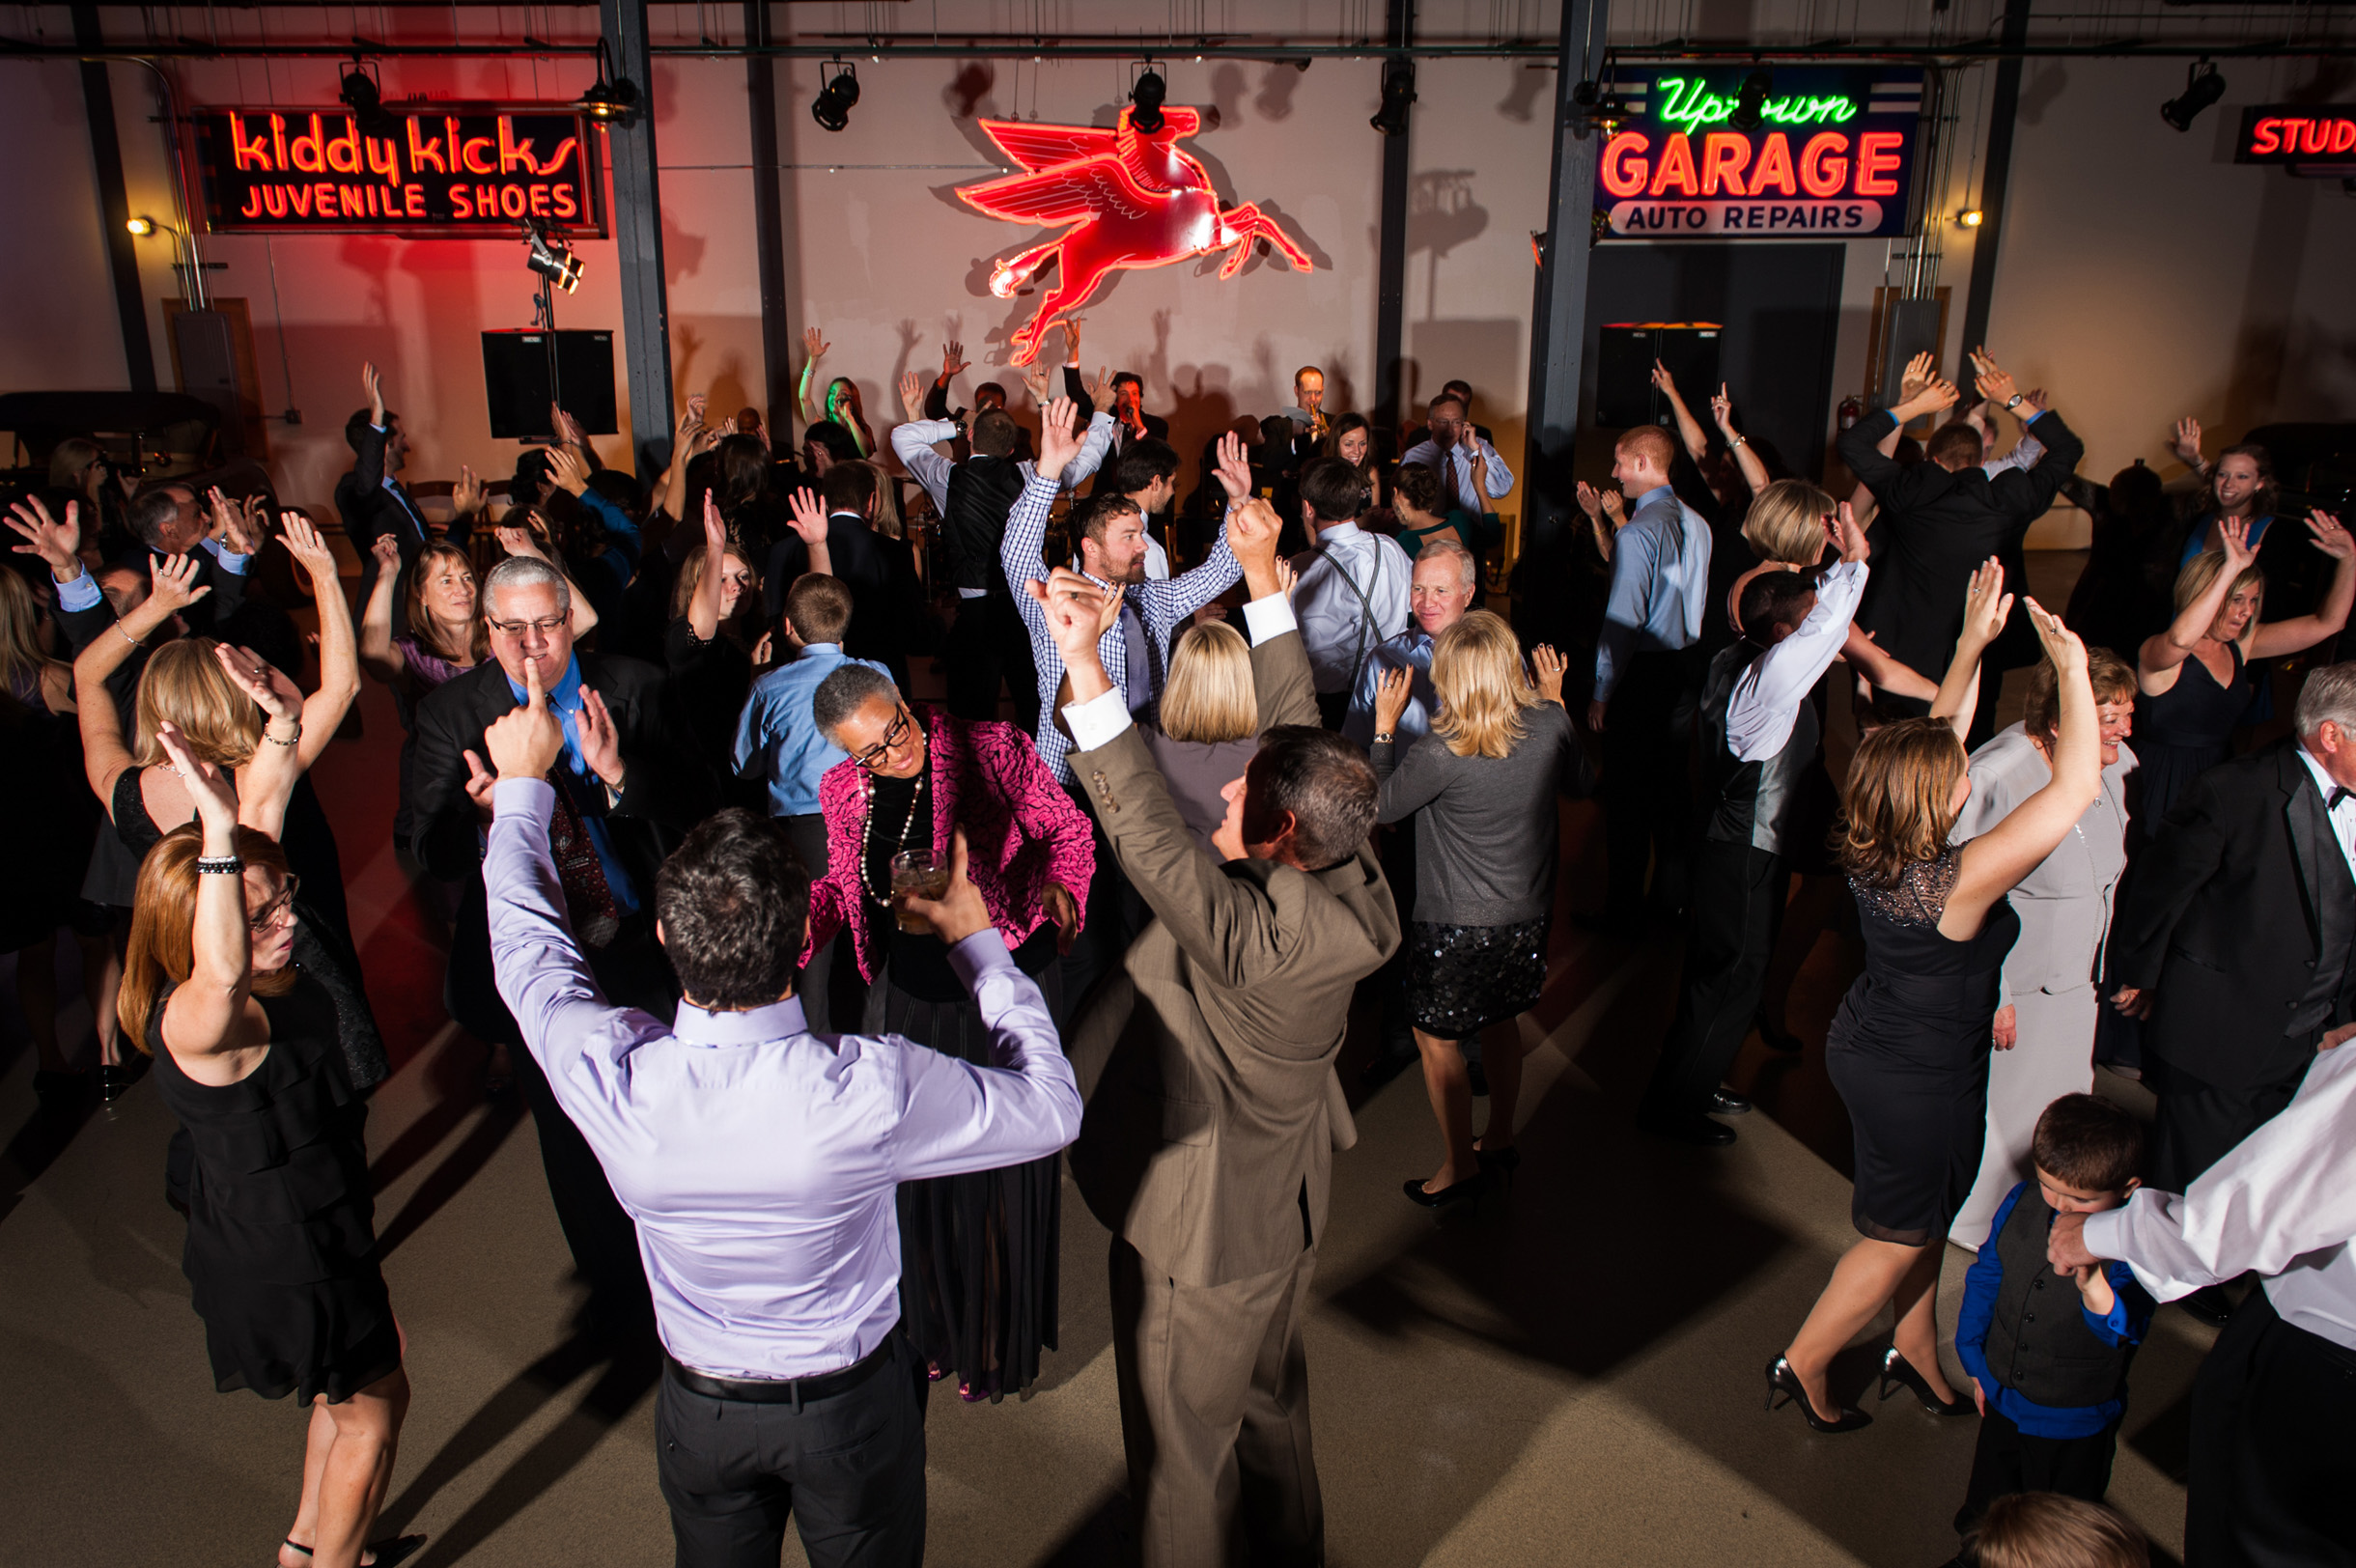 Wedding band performing at the Ravenswood Event Center while guests dance in front of neon signs and classic cars at industrial wedding venue-134